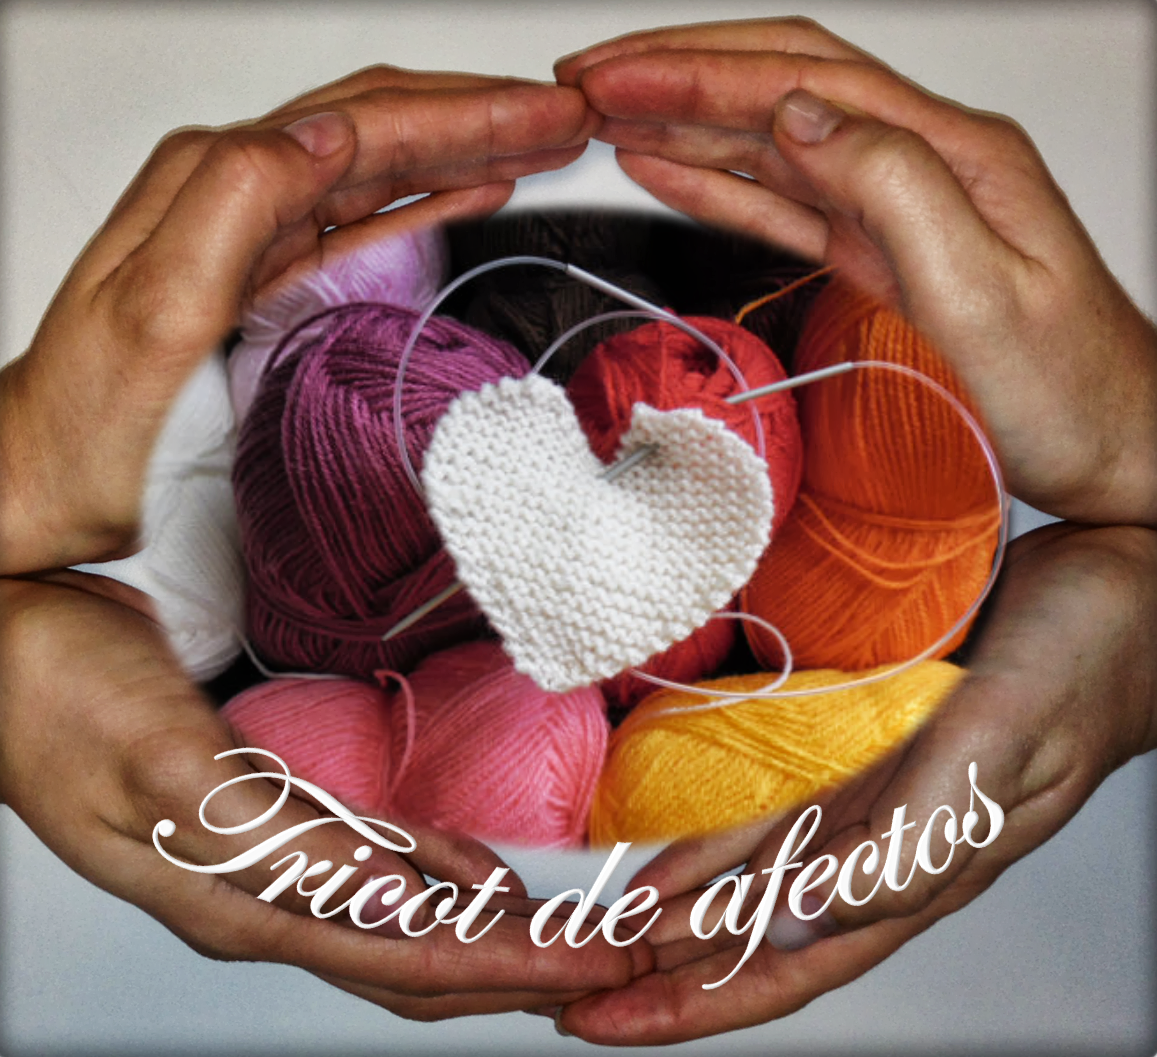 Tricot de Afectos  /  Knitted Affections